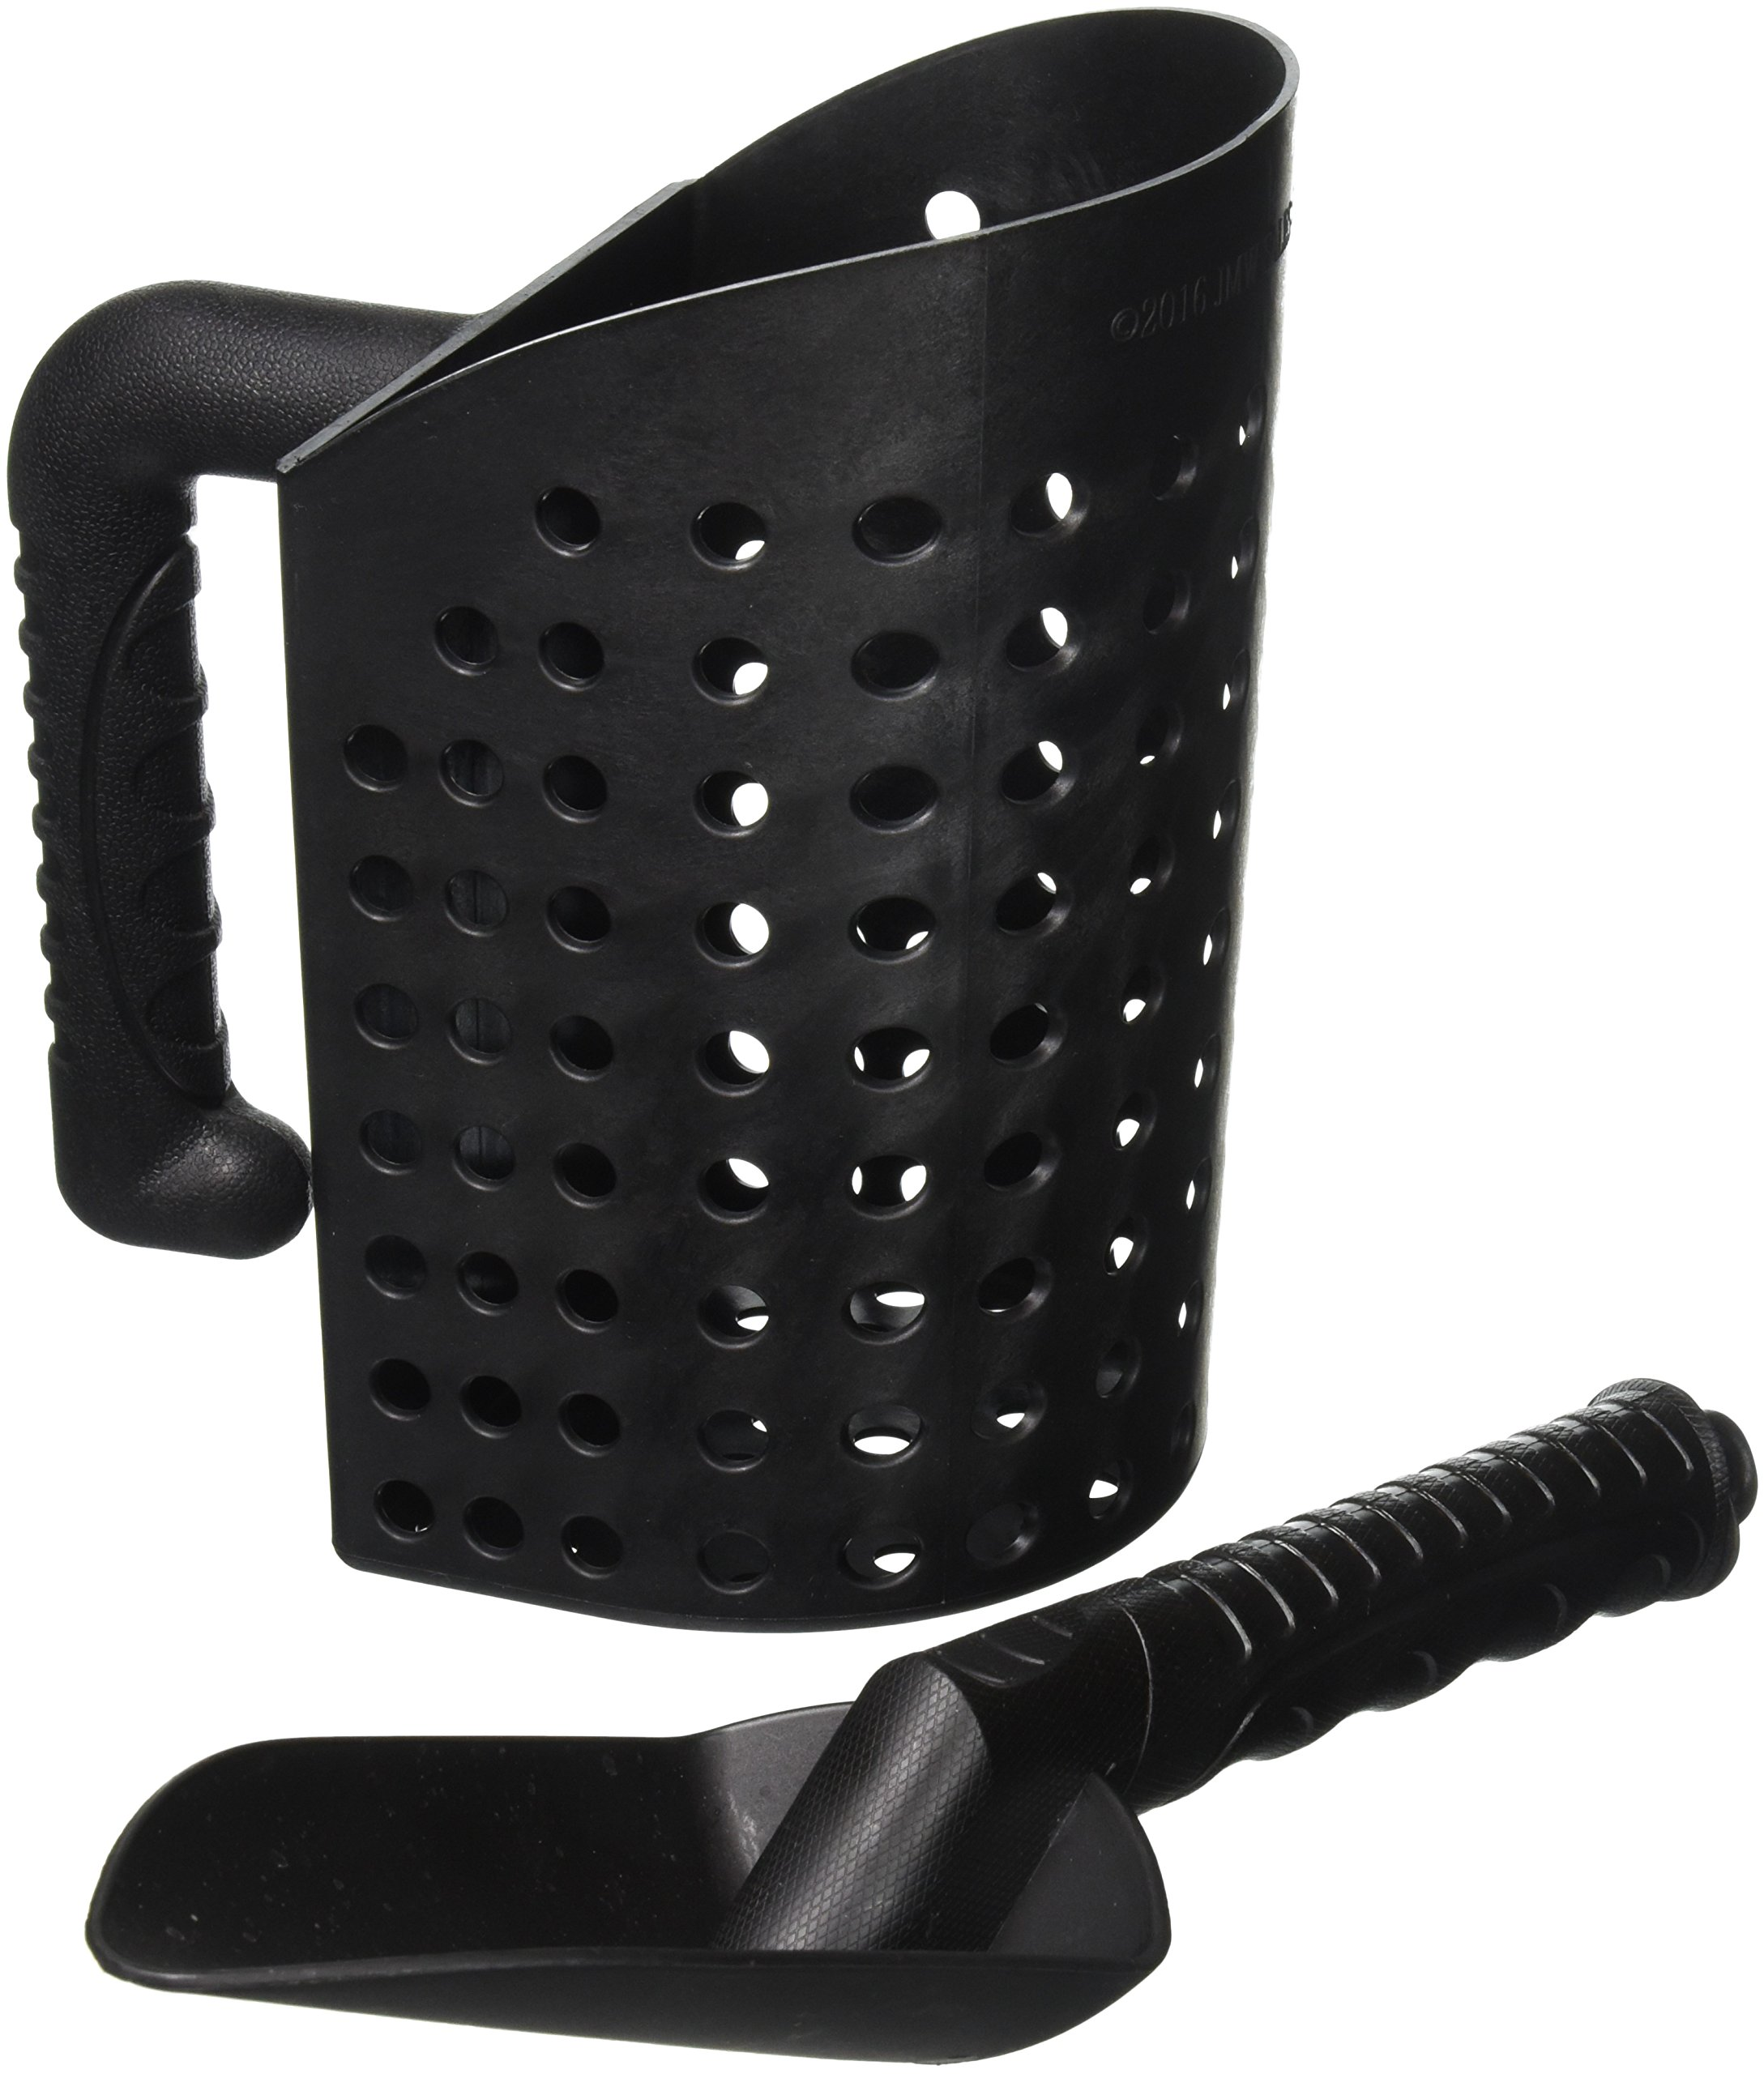 NATIONAL GEOGRAPHIC Sand Scoop and Shovel Accessories for Metal Detecting and Treasure Hunting by NATIONAL GEOGRAPHIC